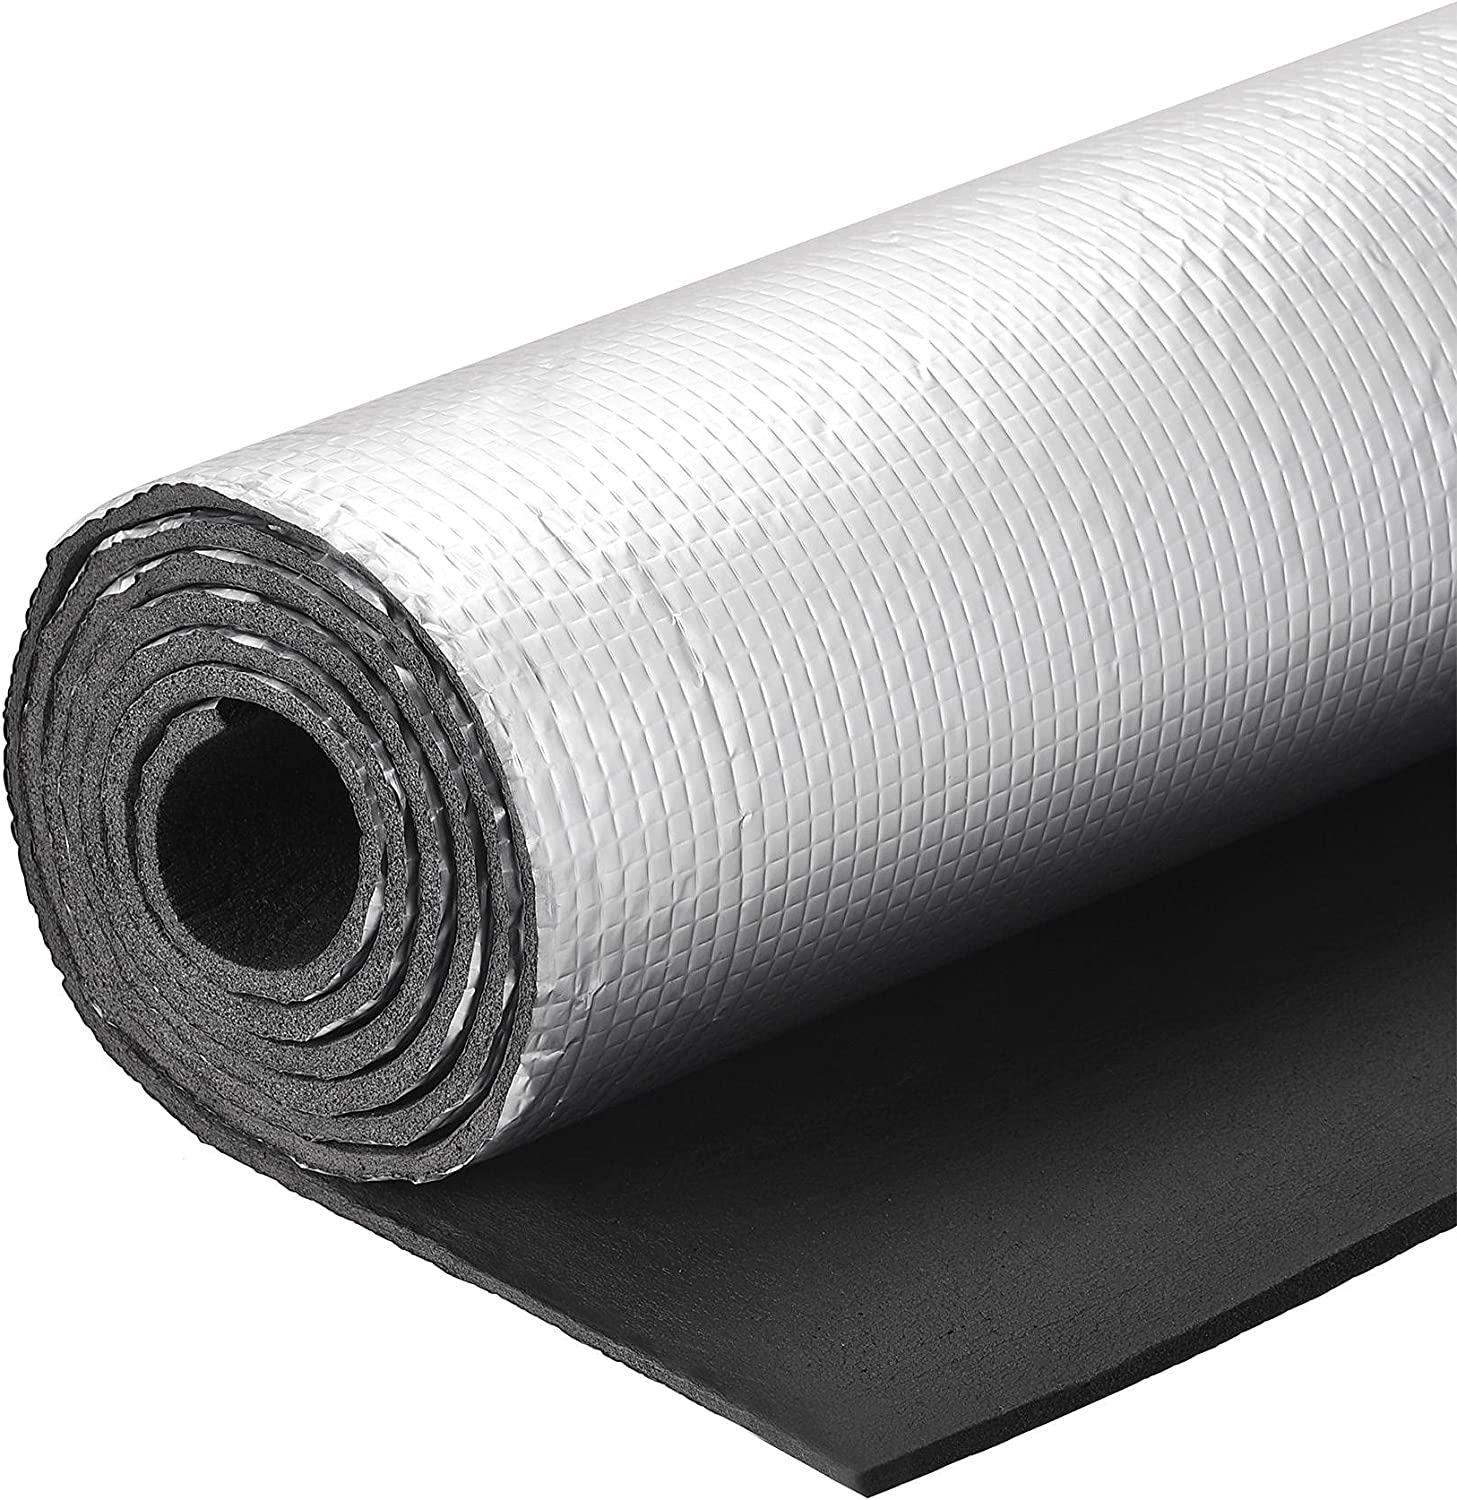 uxcell Insulation unisex 70% OFF Outlet Sheet 2mx0.5mx5mm Aluminum Foil Wate Embossed